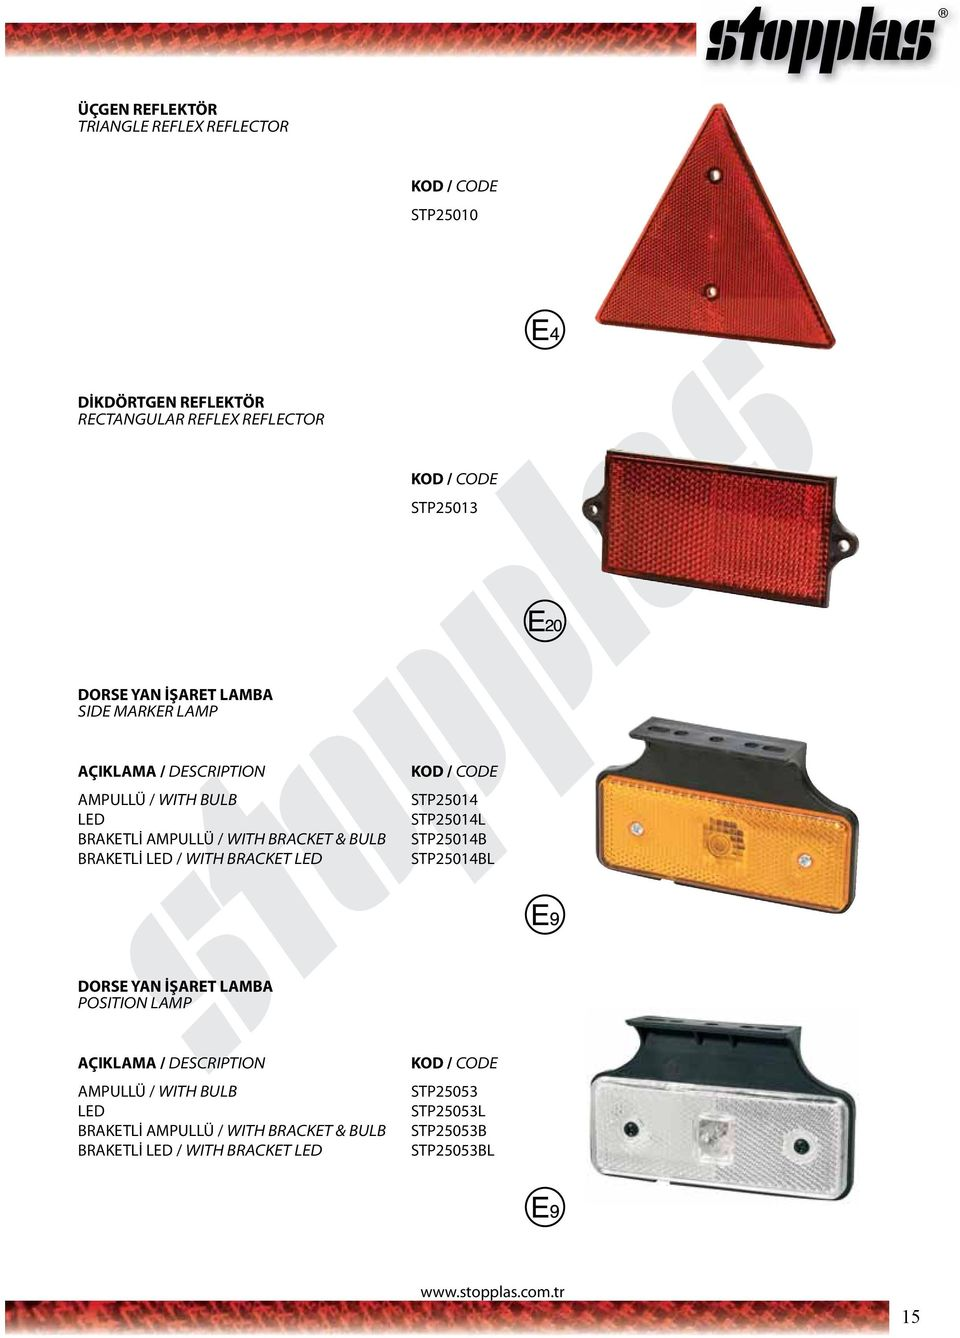 LED / WITH BRACKET LED STP25014 STP25014L STP25014B STP25014BL DORSE YAN İŞARET LAMBA POSITION LAMP AMPULLÜ / WITH